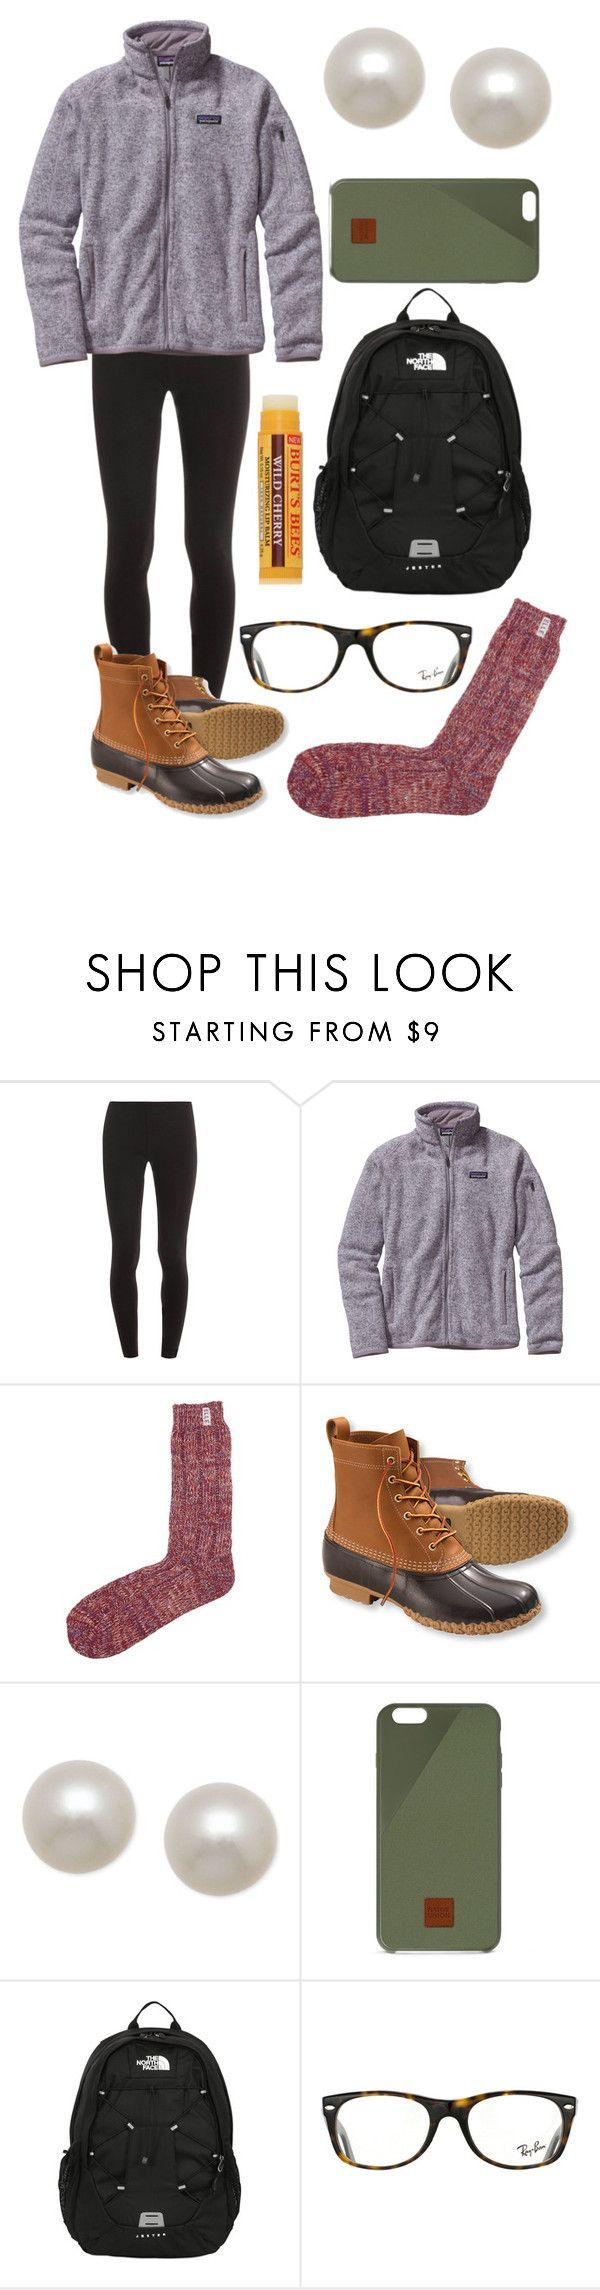 "I like this >> ""CCD today"" by emmacaseyyyy ❤ liked on Polyvore featuring mode, Sple..."